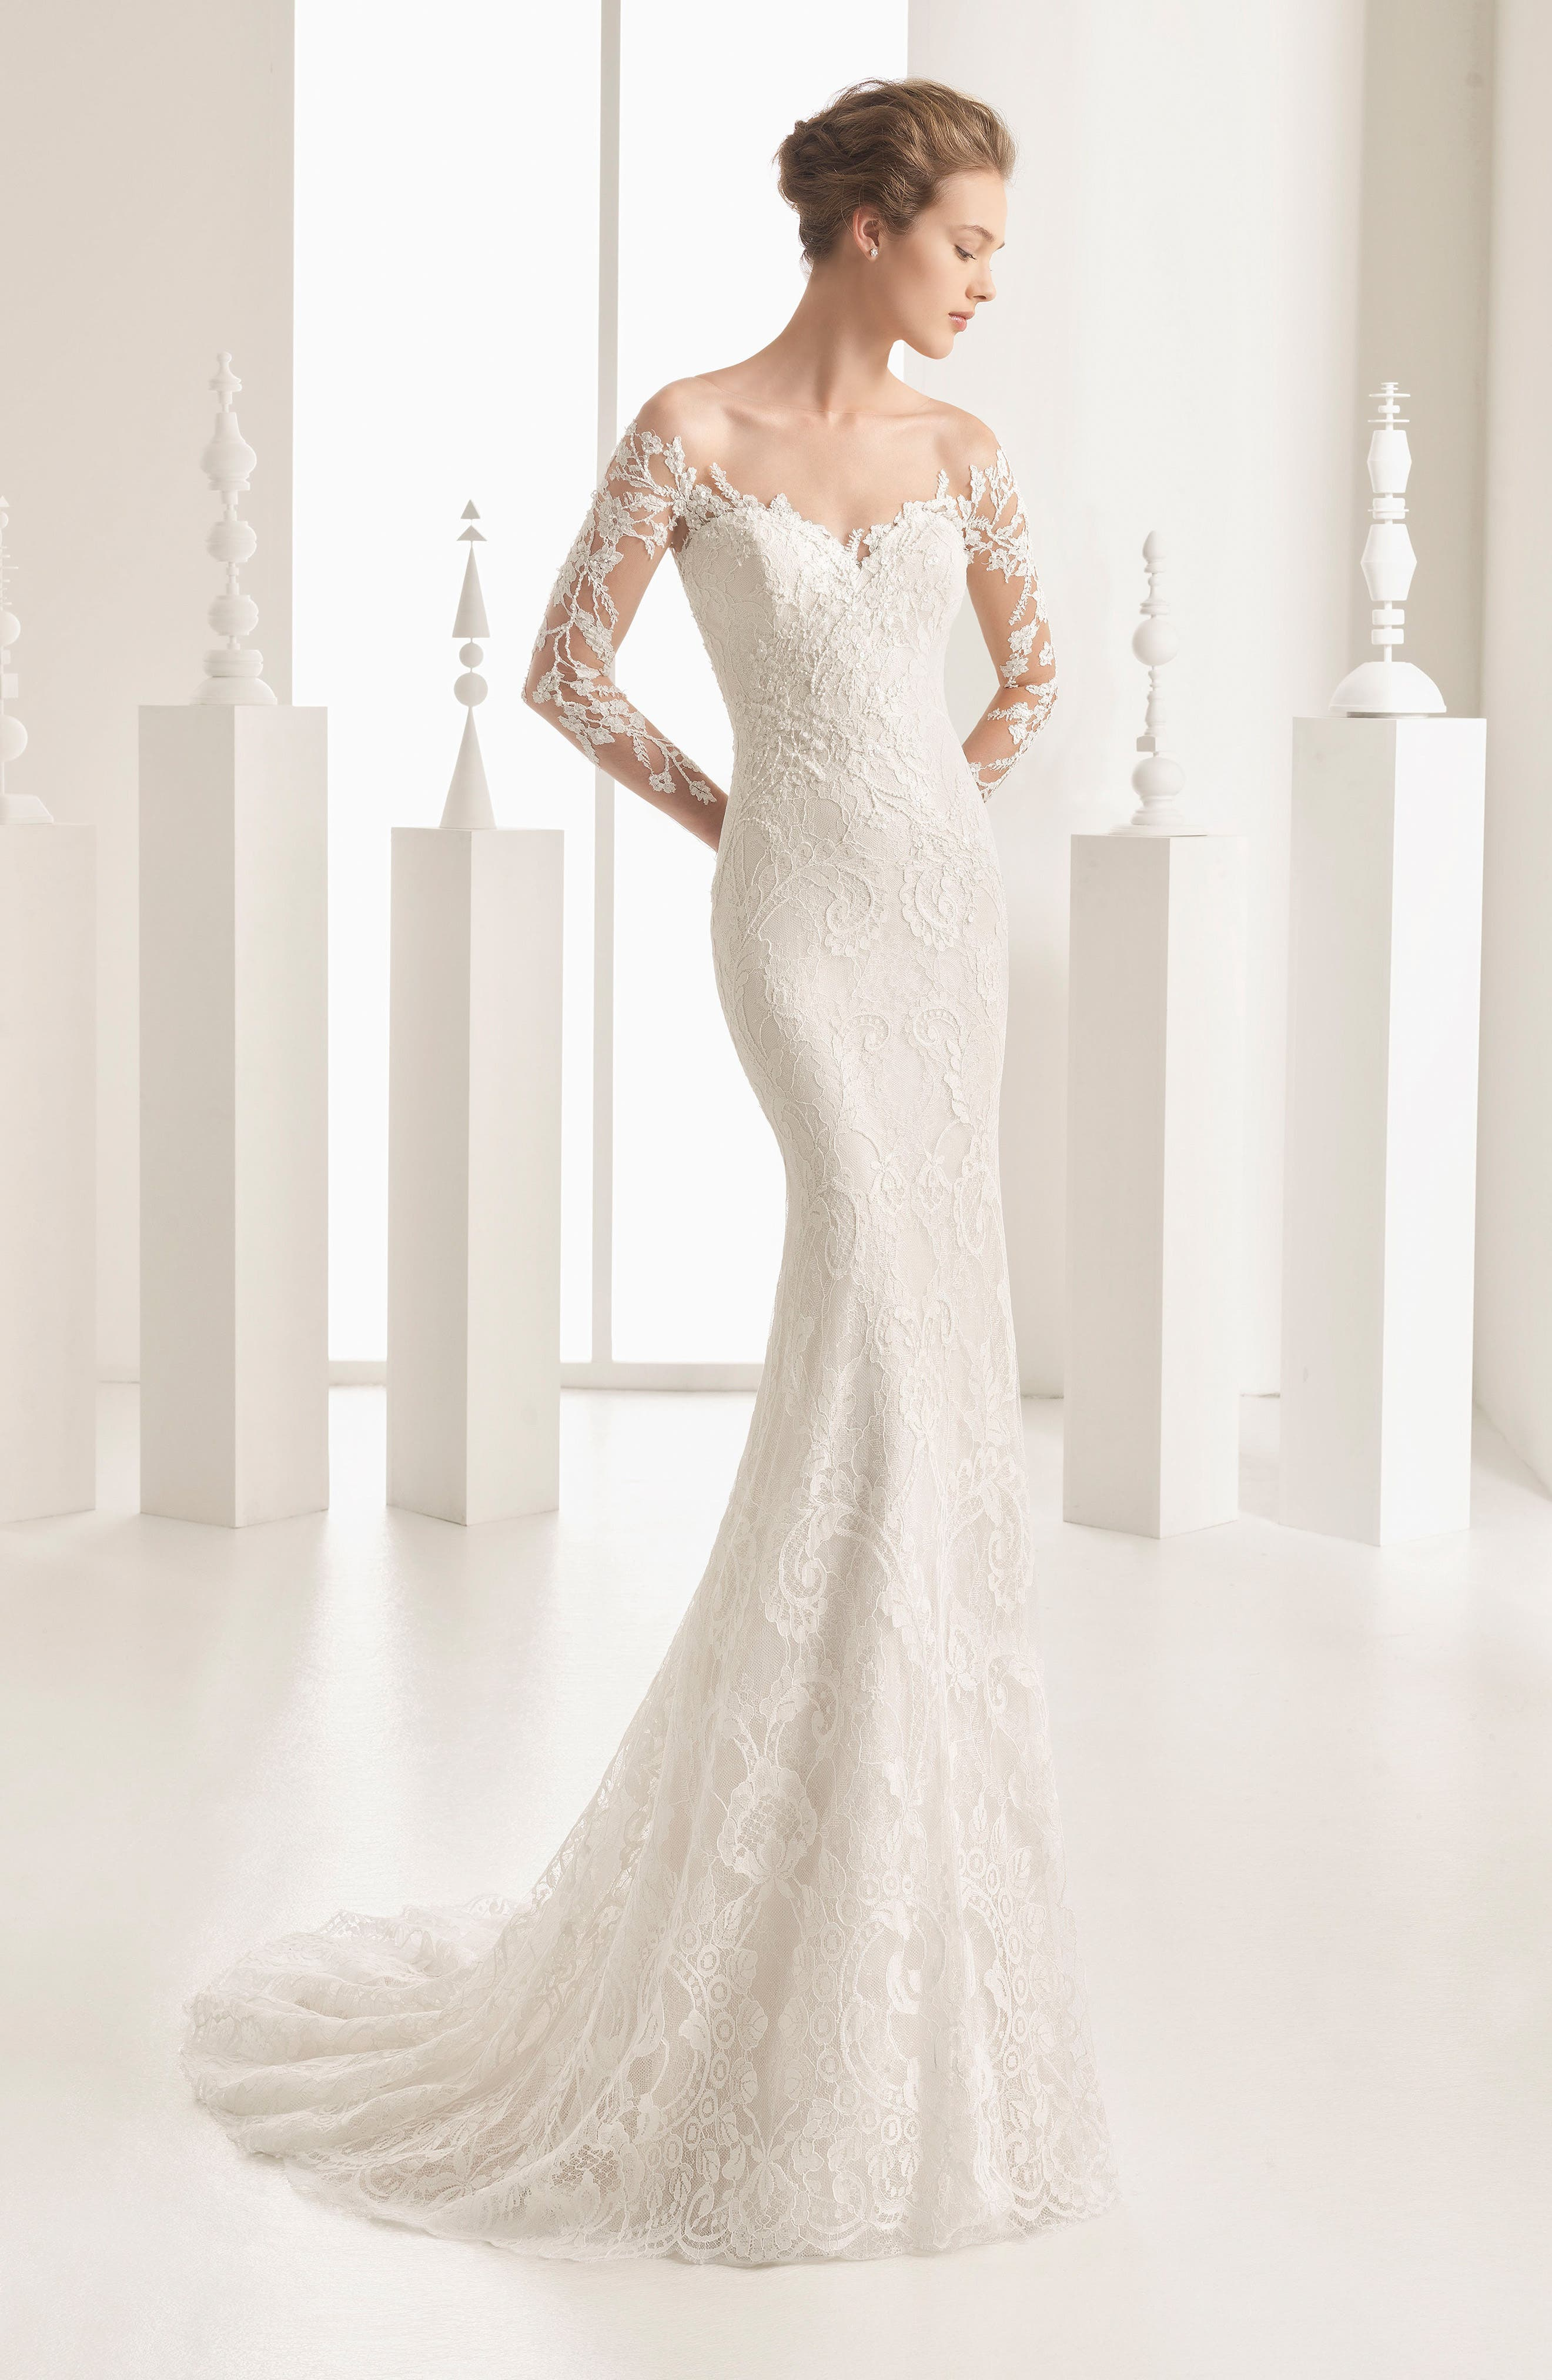 Naim Strapless Illusion Lace Mermaid Gown,                             Alternate thumbnail 4, color,                             900